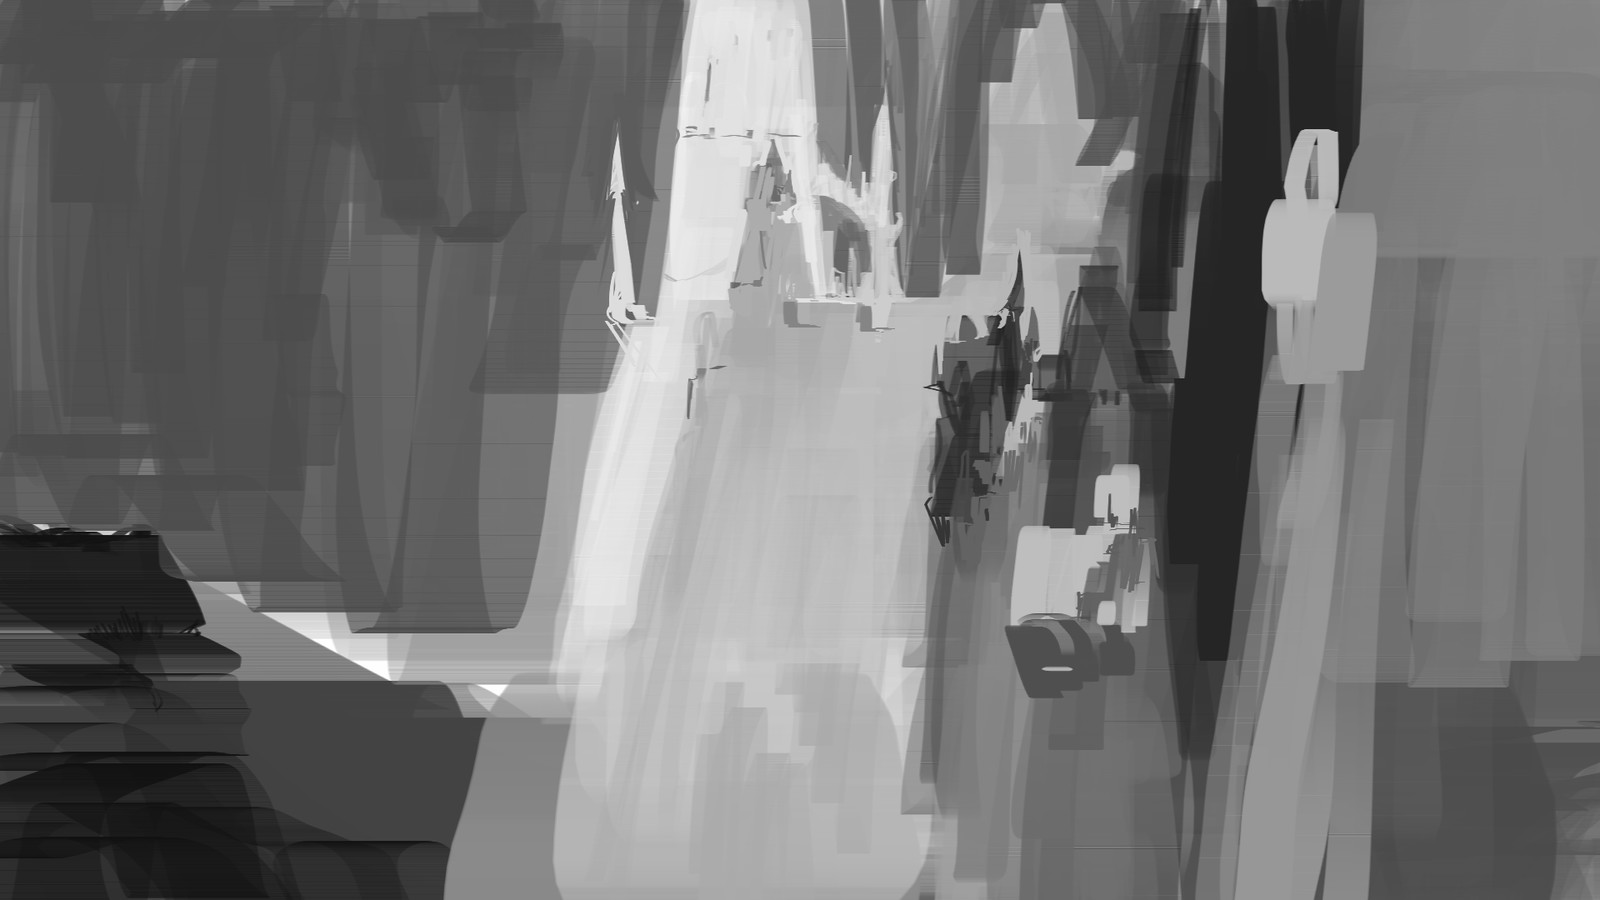 Sketch of the city based from triangular shapes, inspired from coral.